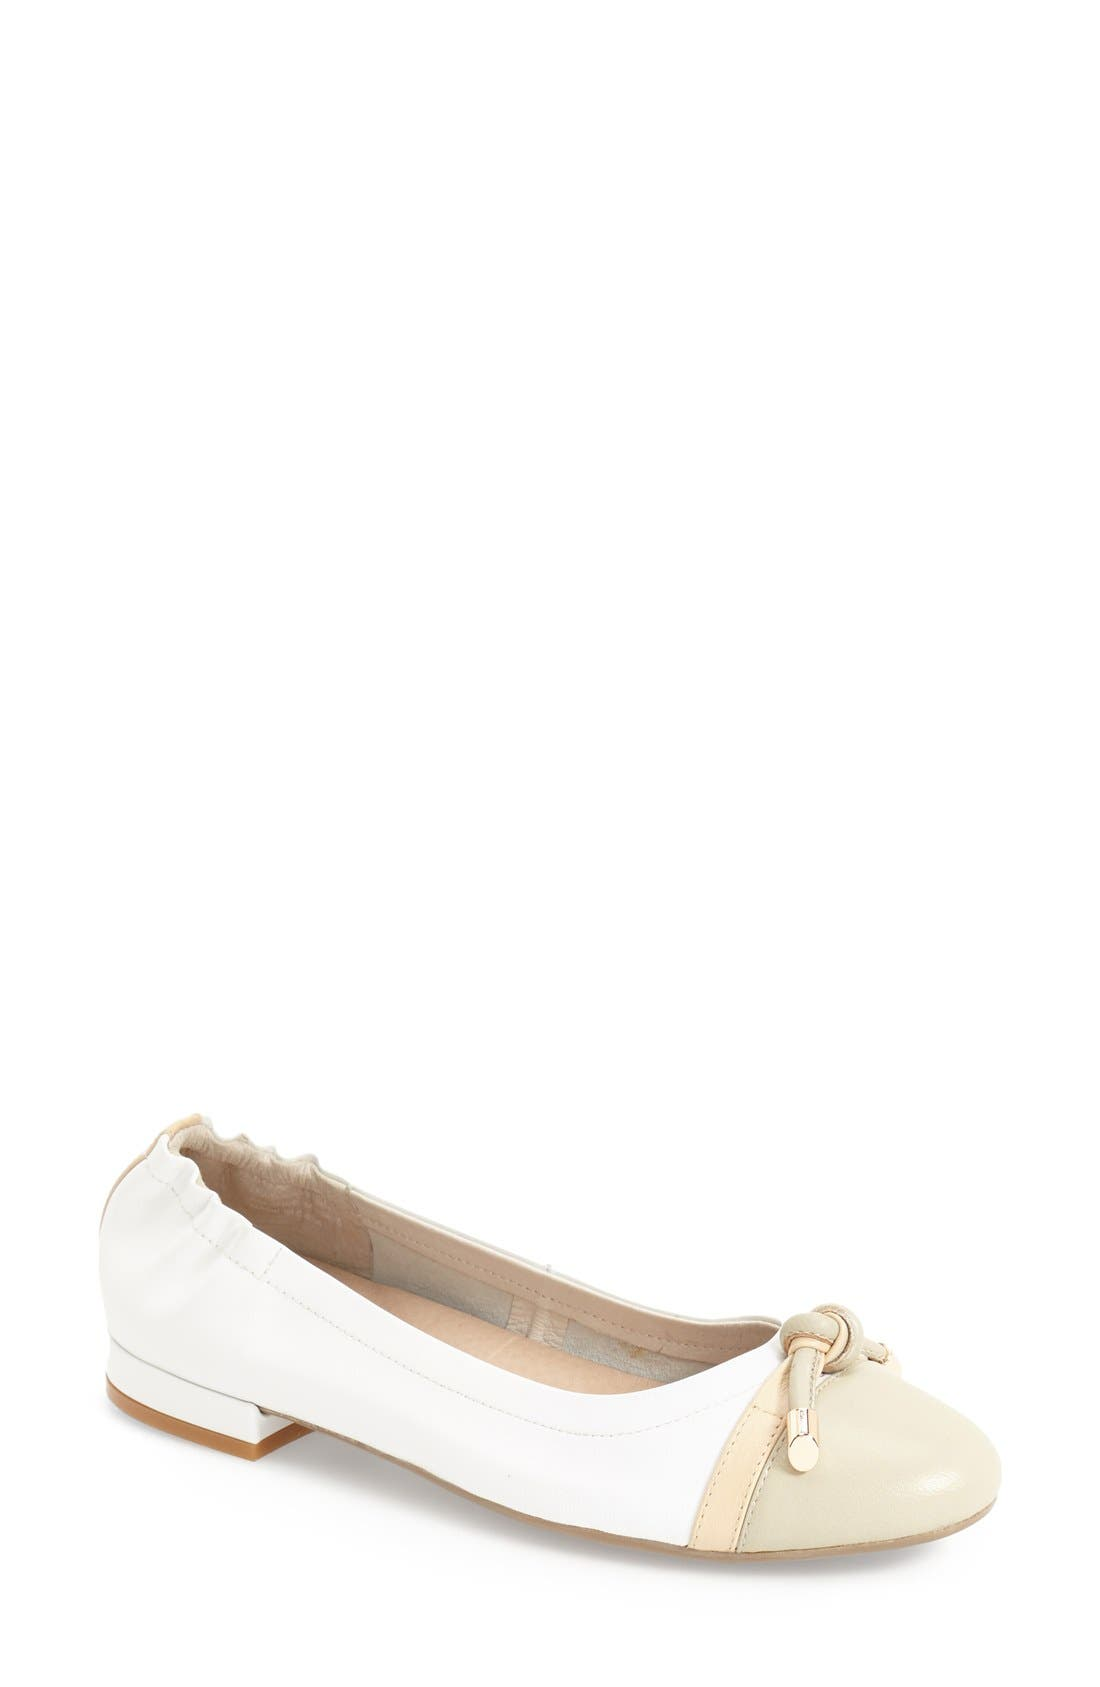 'Amelia' Flat,                             Main thumbnail 1, color,                             White Nappa Leather